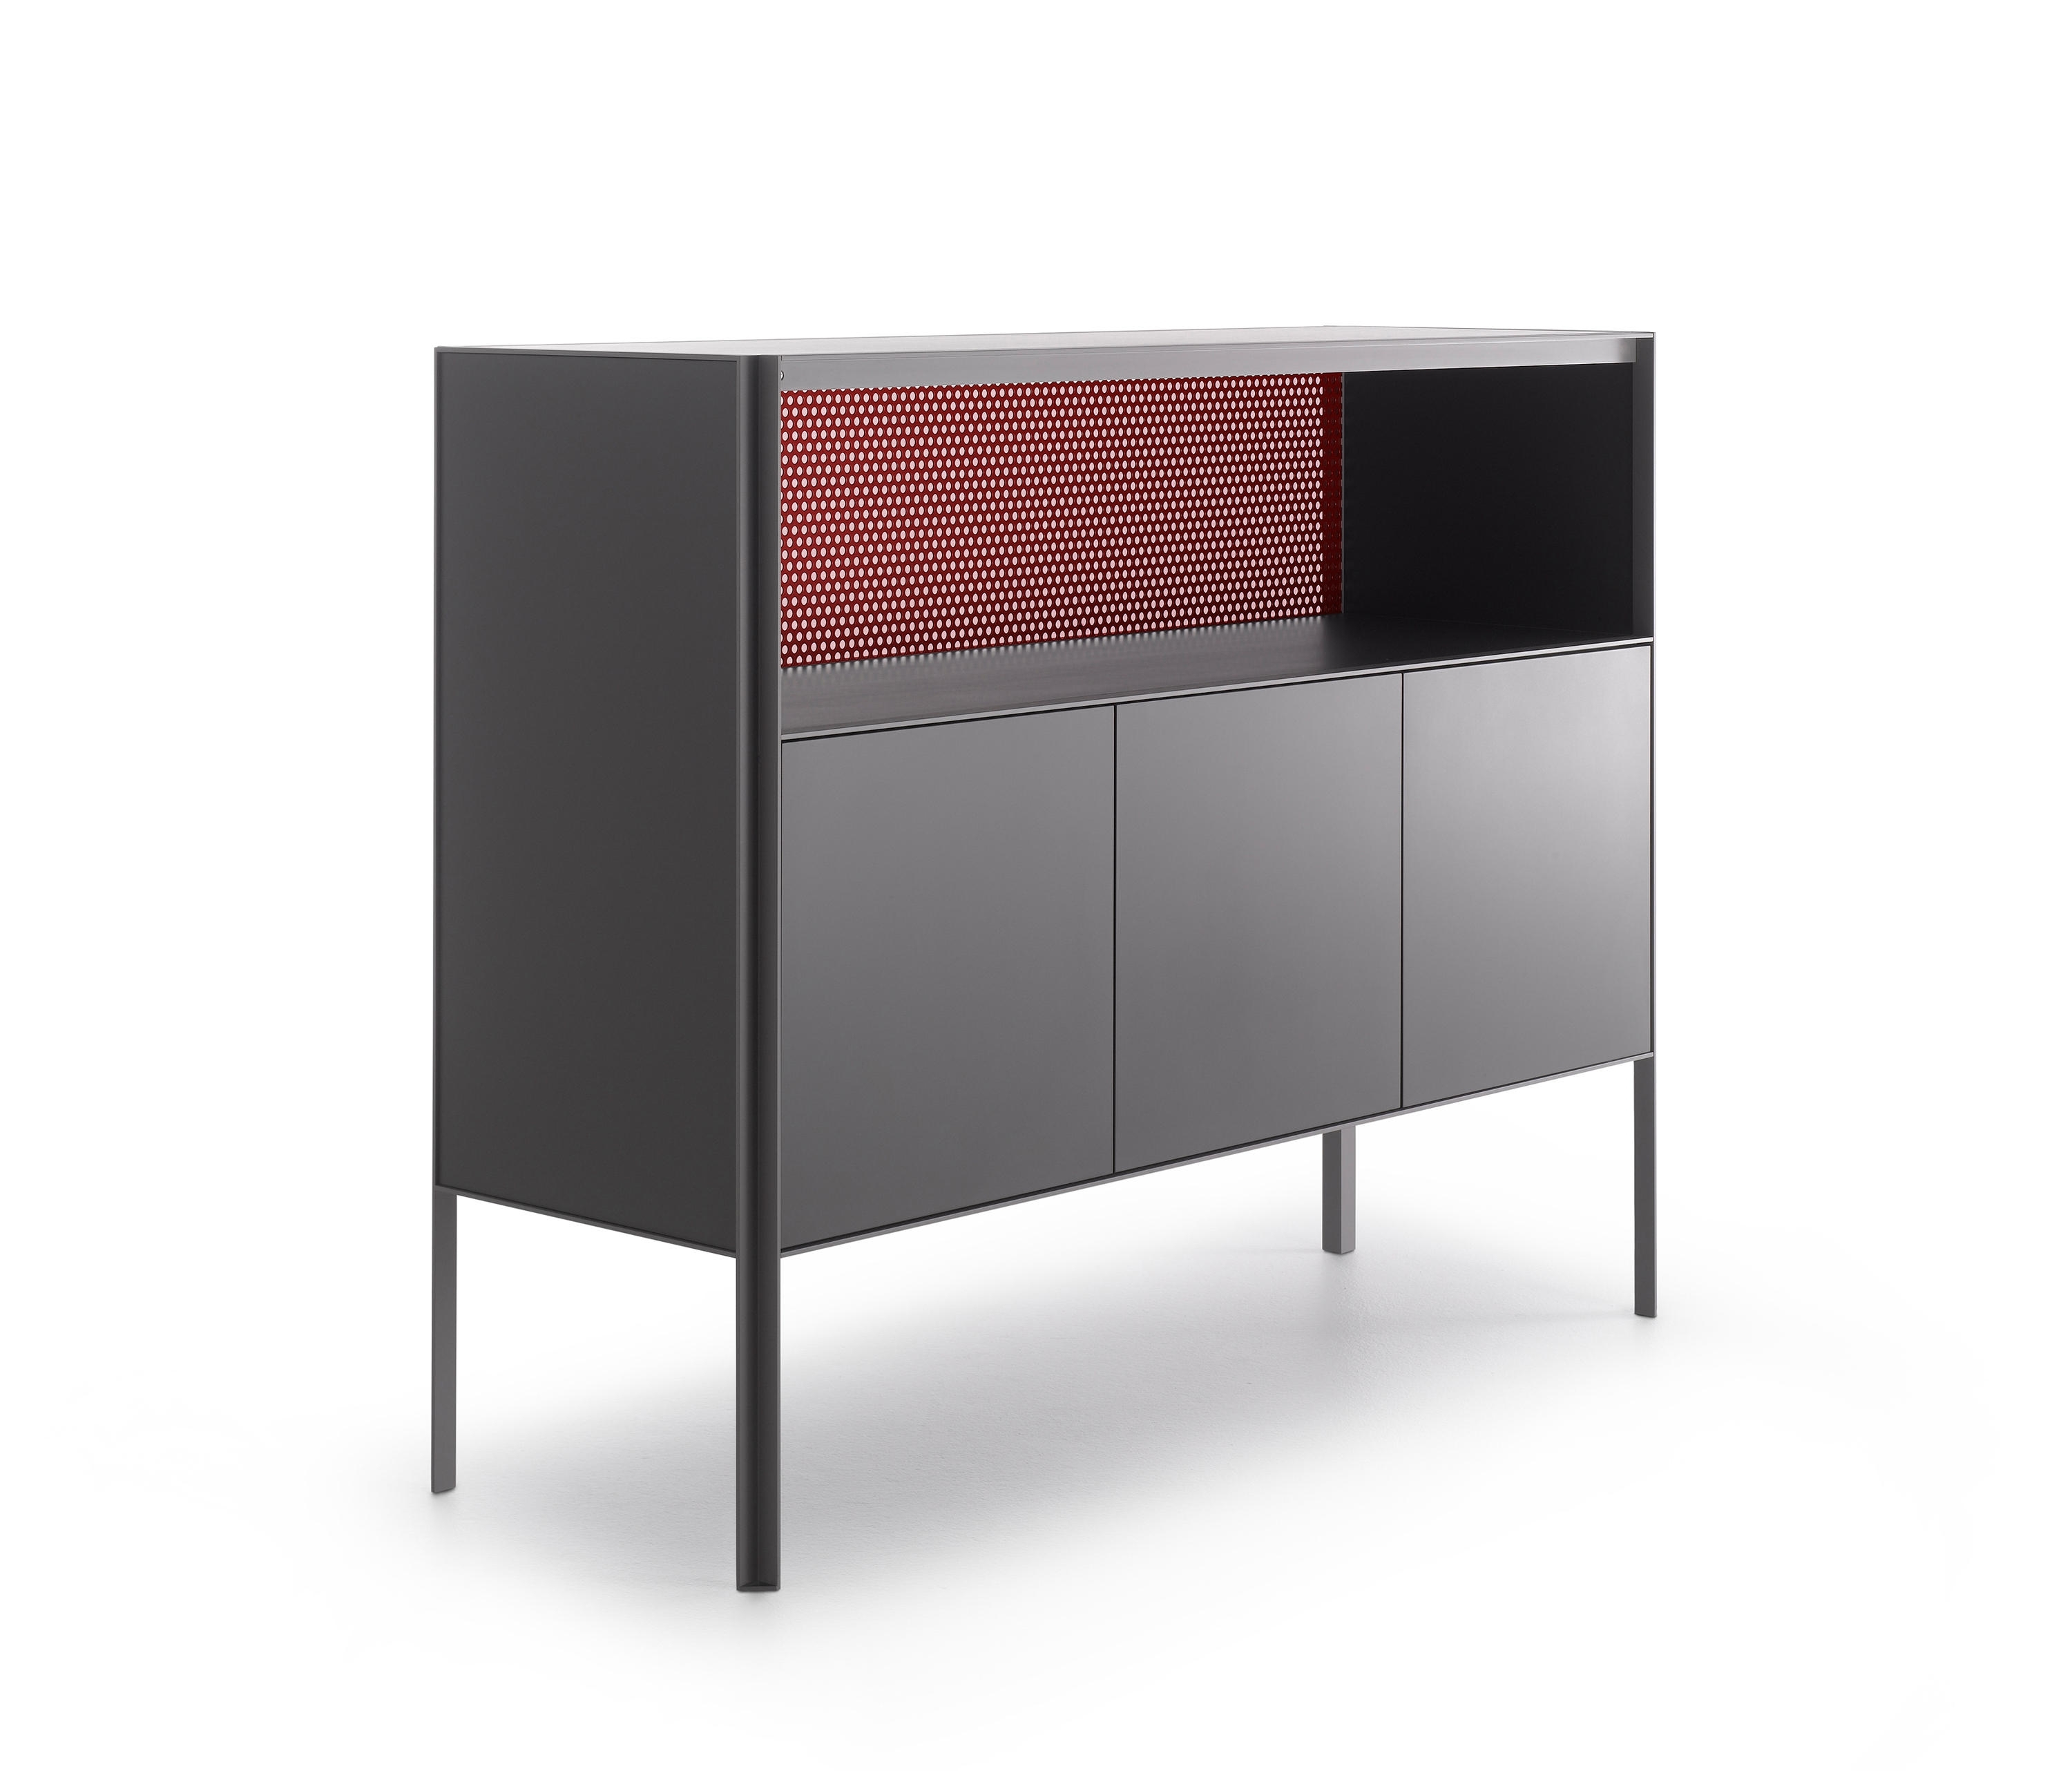 Heron - Sideboards From Mdf Italia | Architonic intended for 4-Door/4-Drawer Metal Inserts Sideboards (Image 15 of 30)